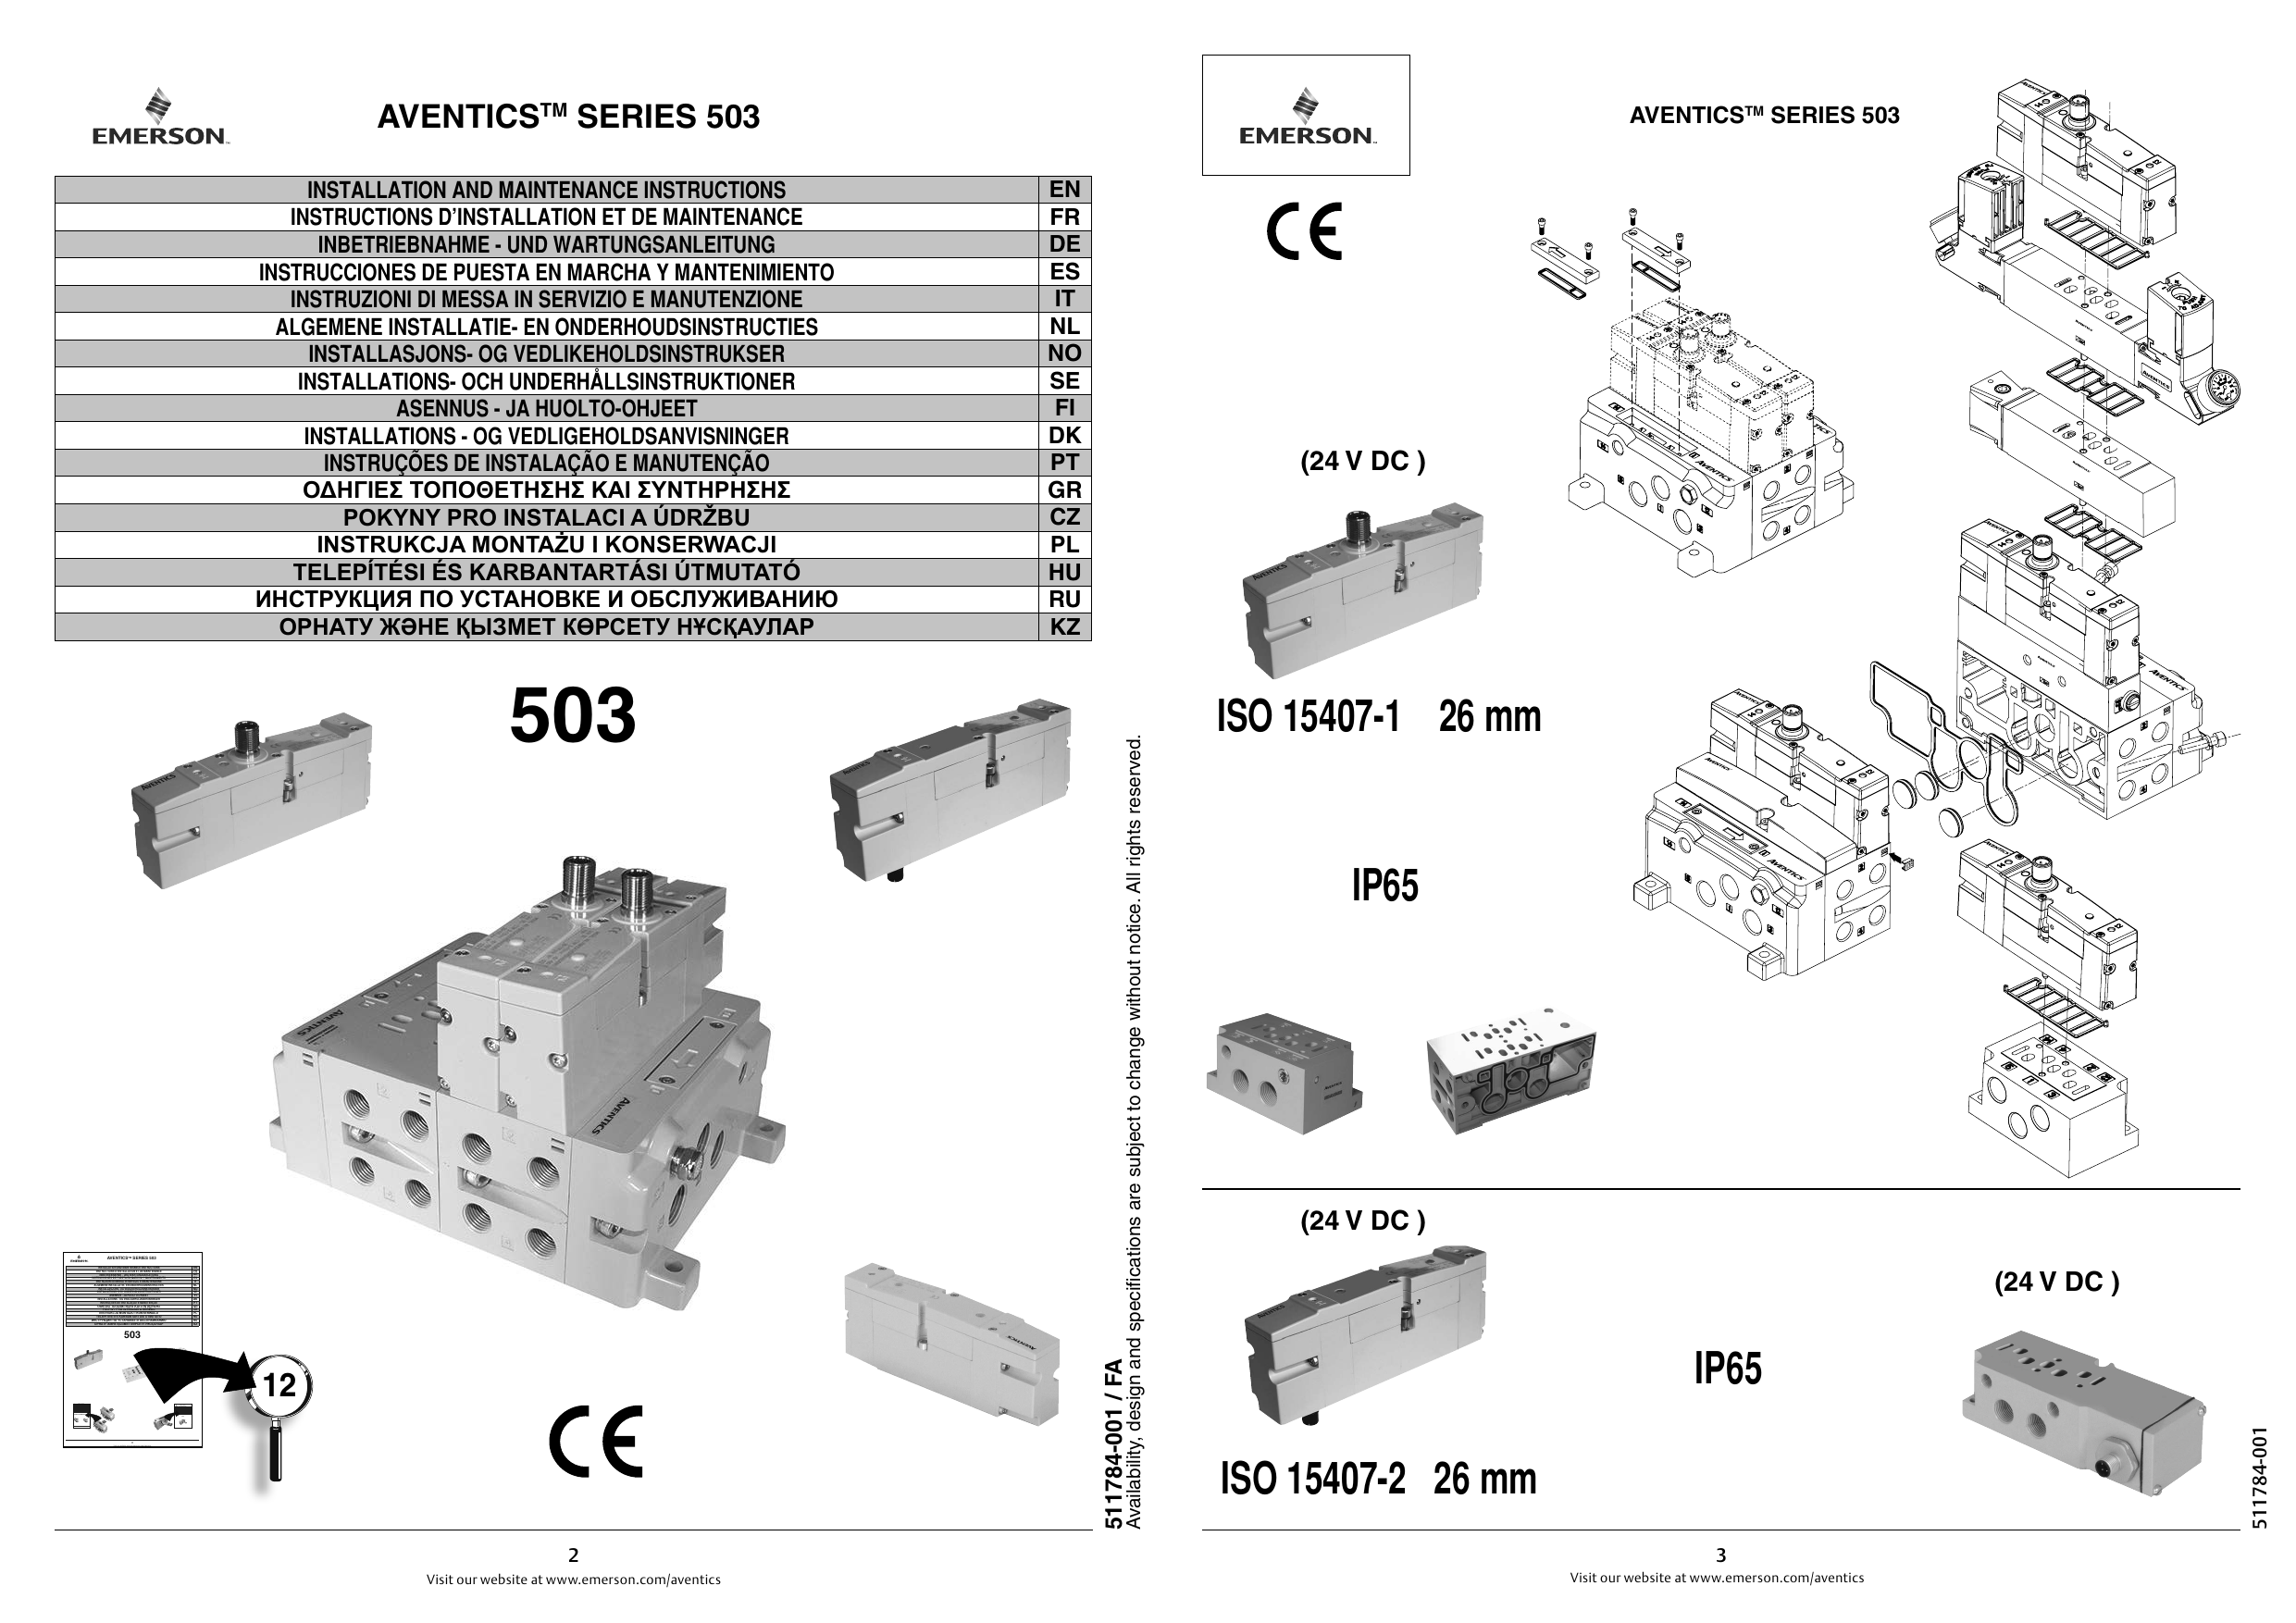 AVENTICS Series 503 Pneumatic Valve System Owner's Manual